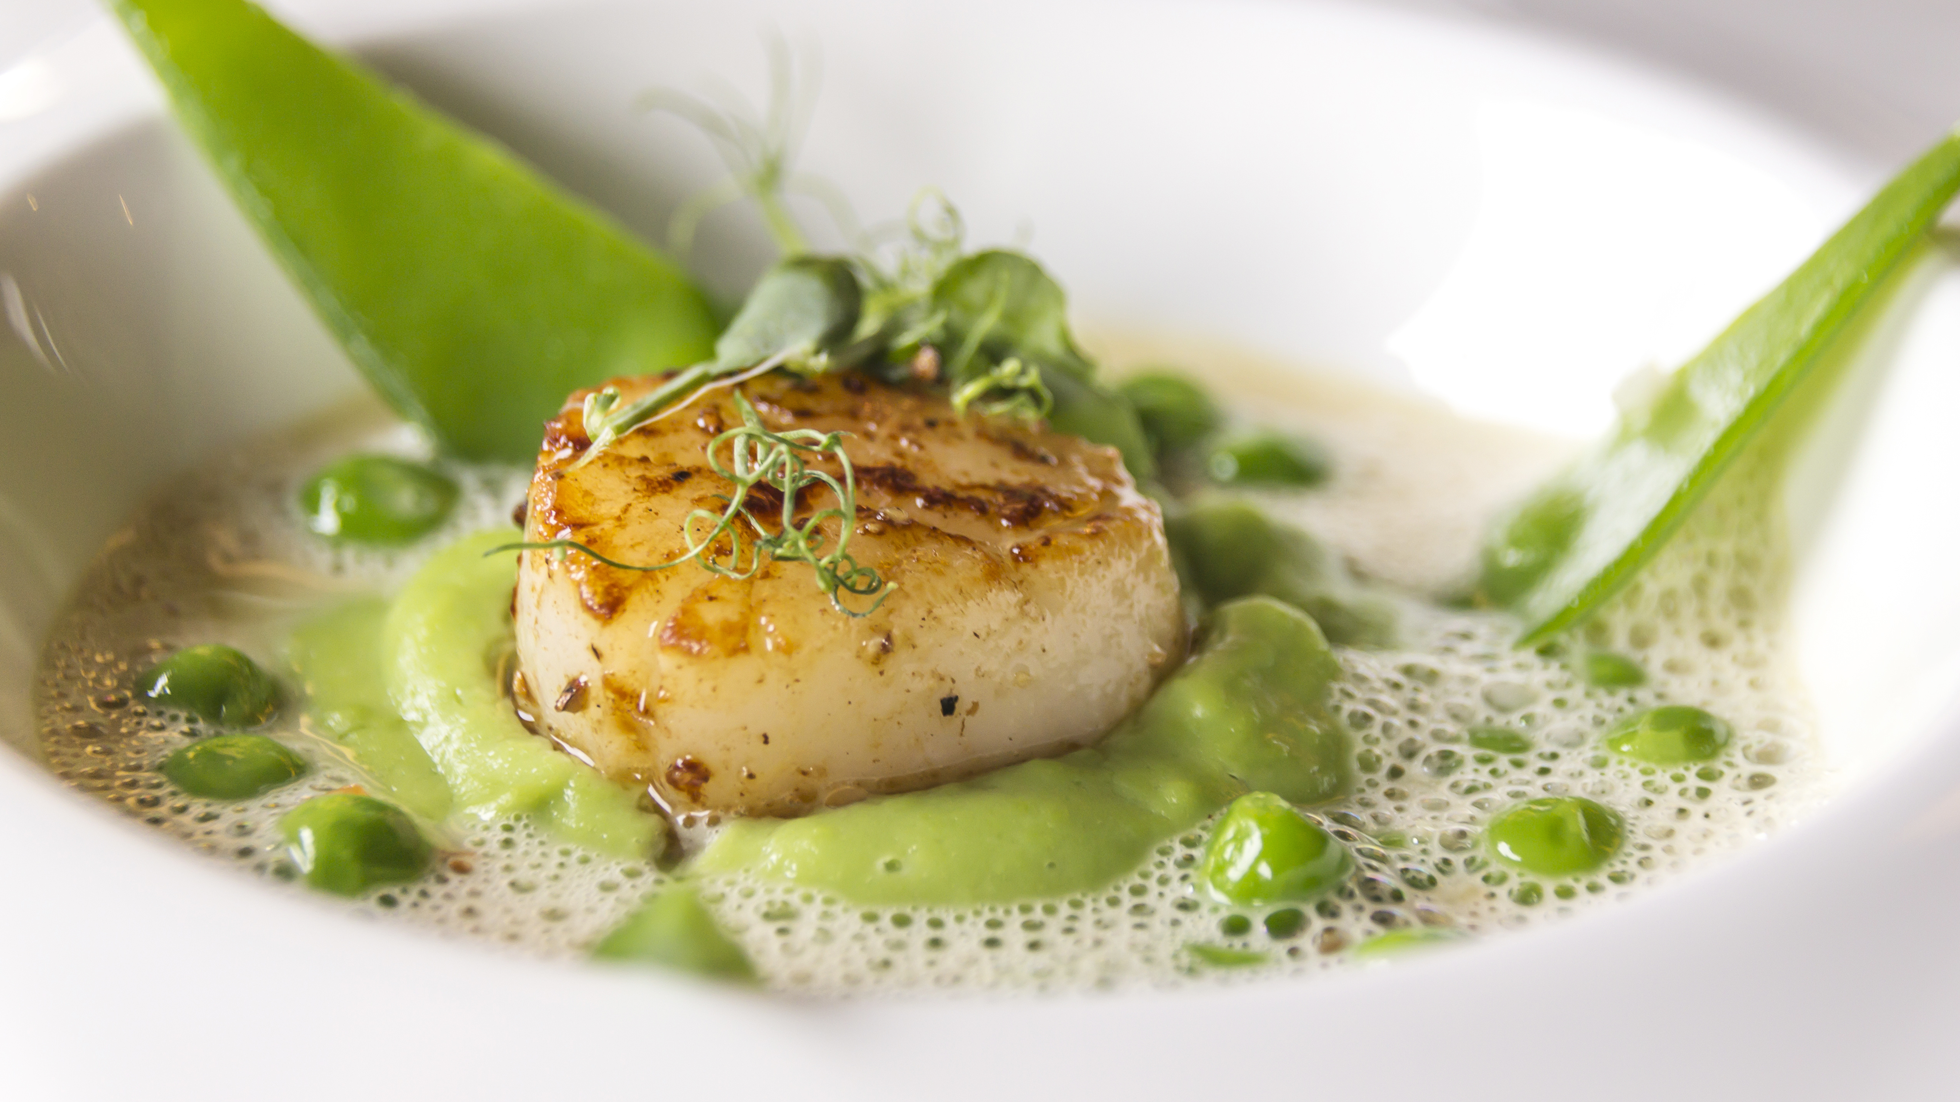 Snacky scallops and a cream of peas with ginger